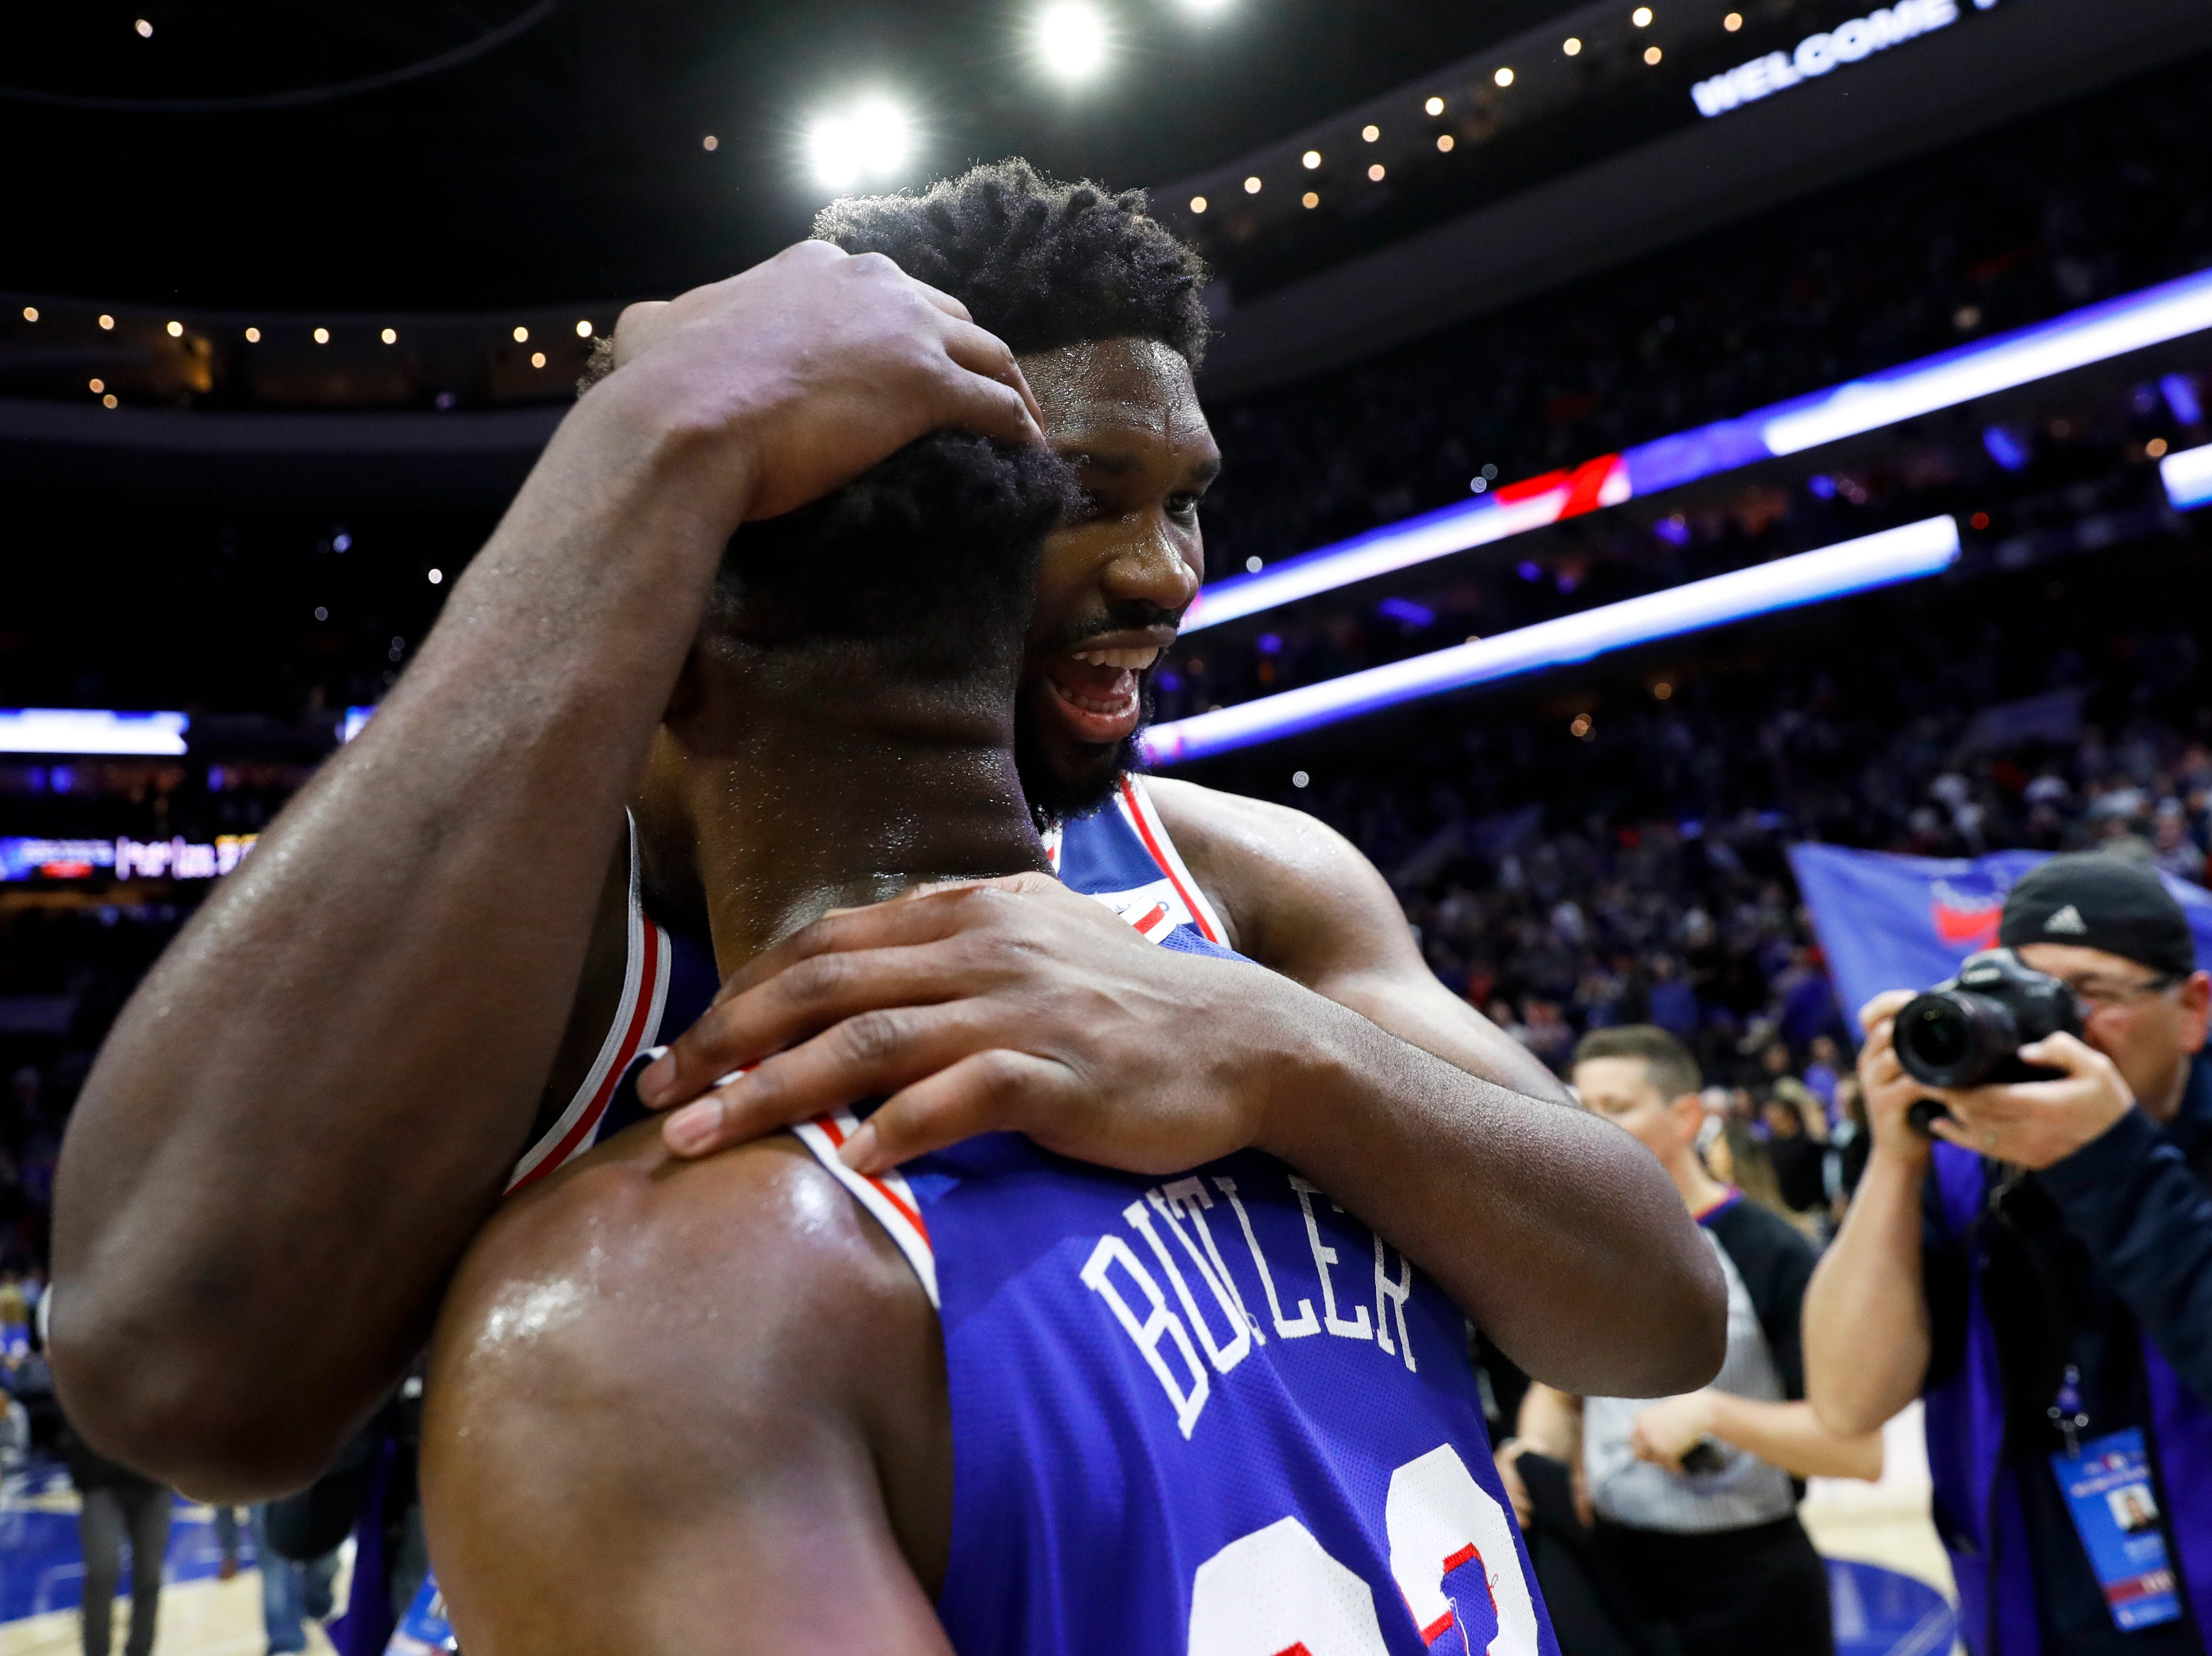 Sixers do more than show fight against Celtics: Embiid takes a swing, Butler knocks them out